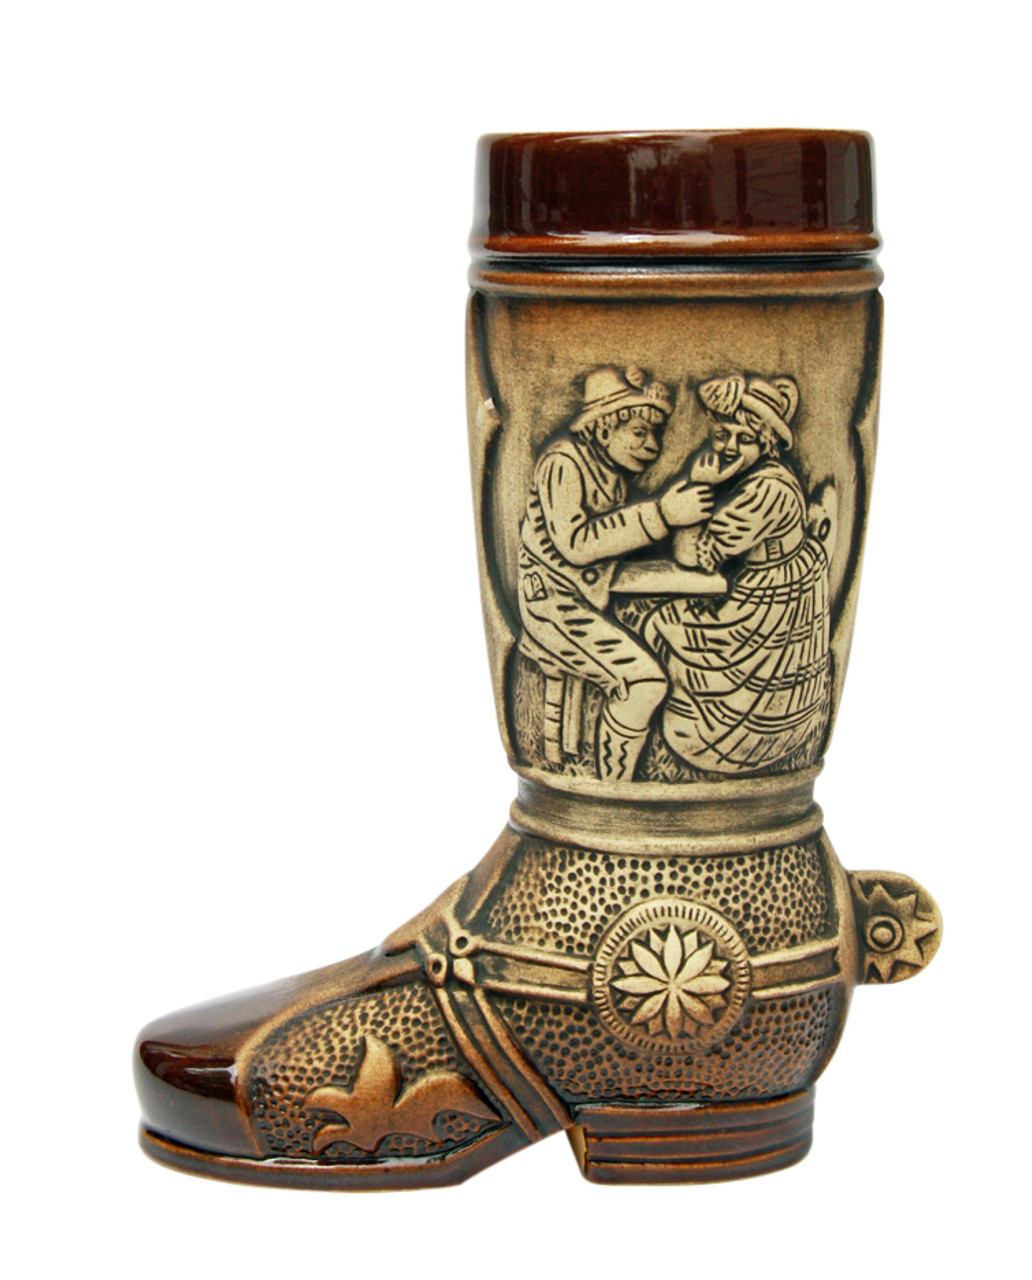 Rustic Ceramic Beer Boot with German Scenes & 3D Spur